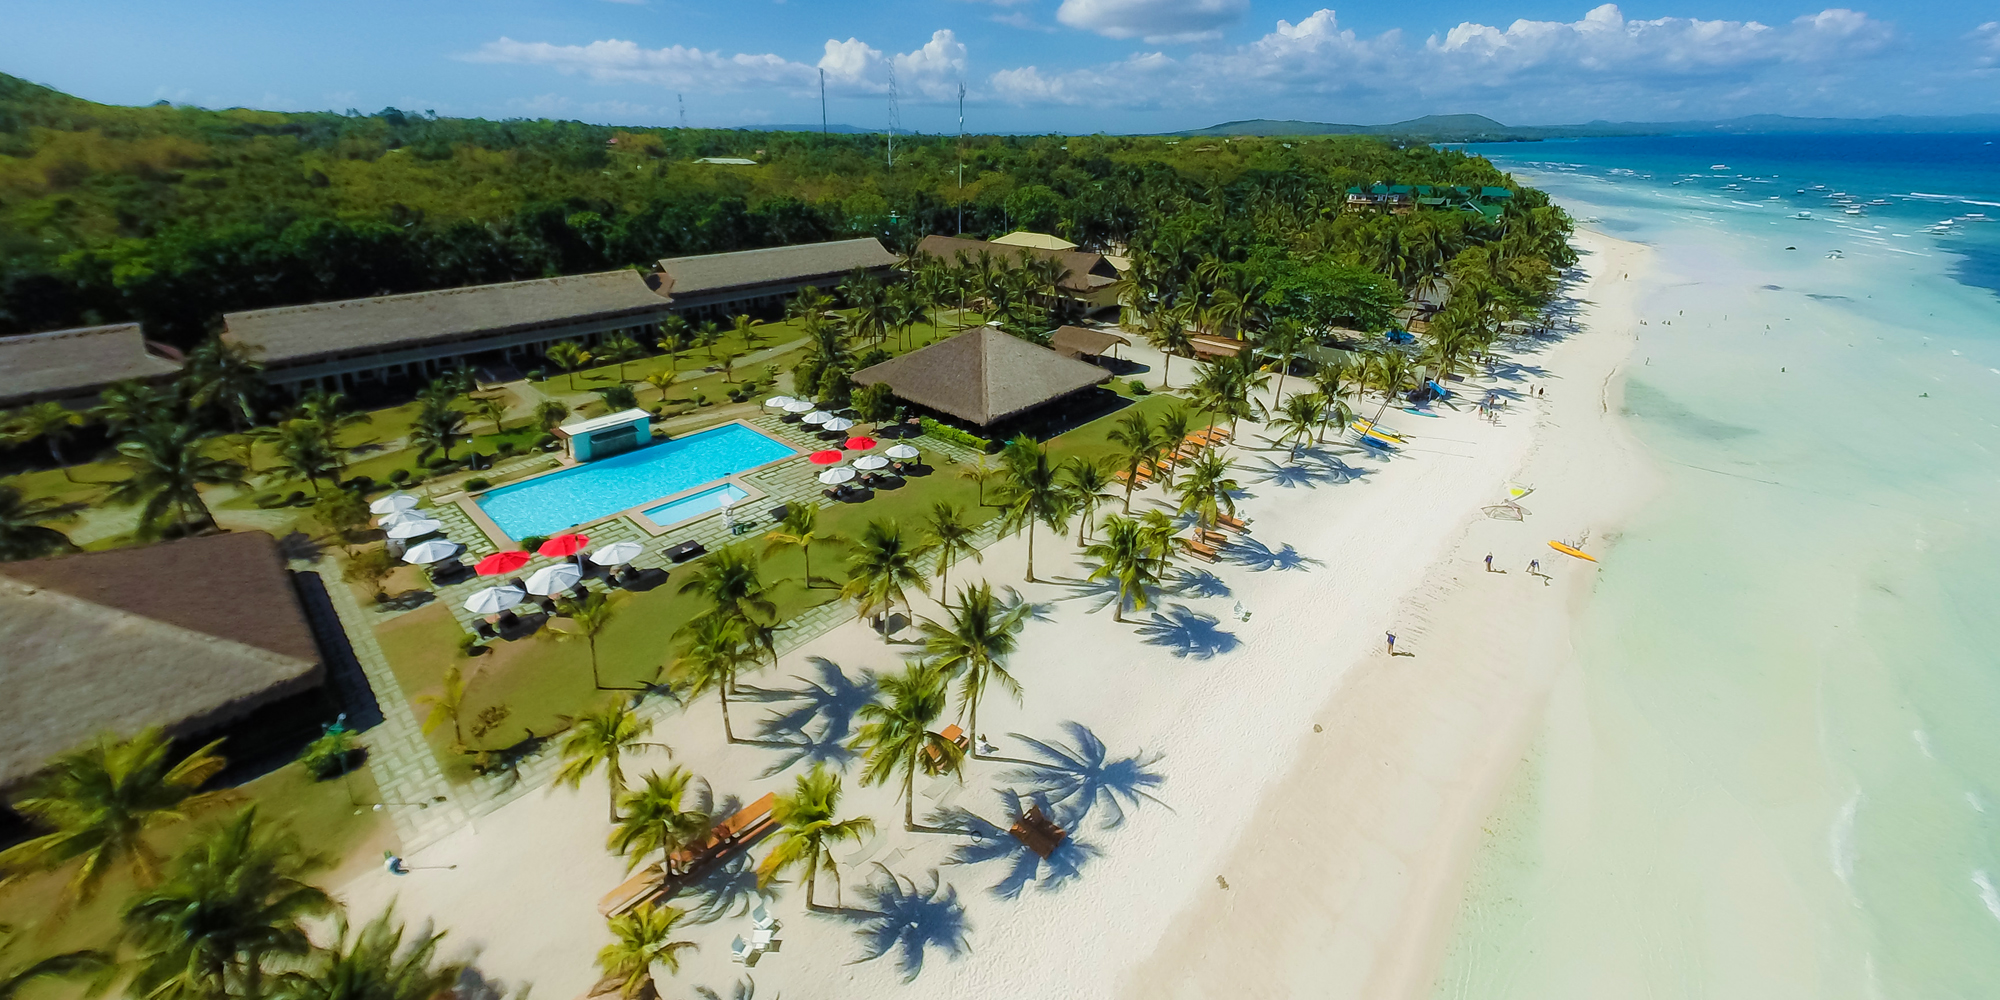 58e62f9260083-bohol_beach_club_3